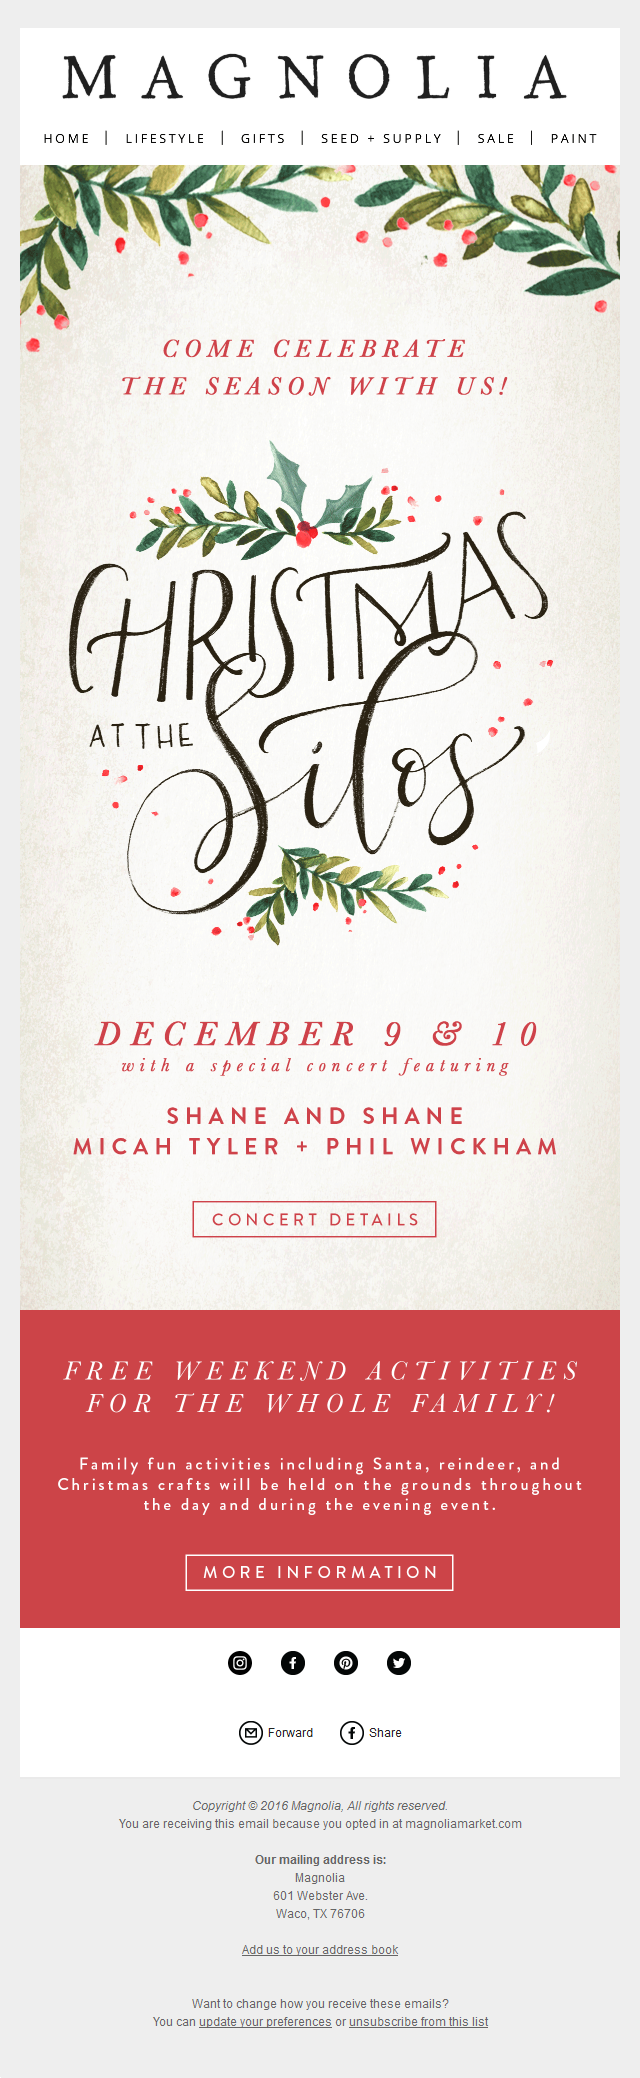 Magnolia Market - Join us for our first Christmas at the Silos!